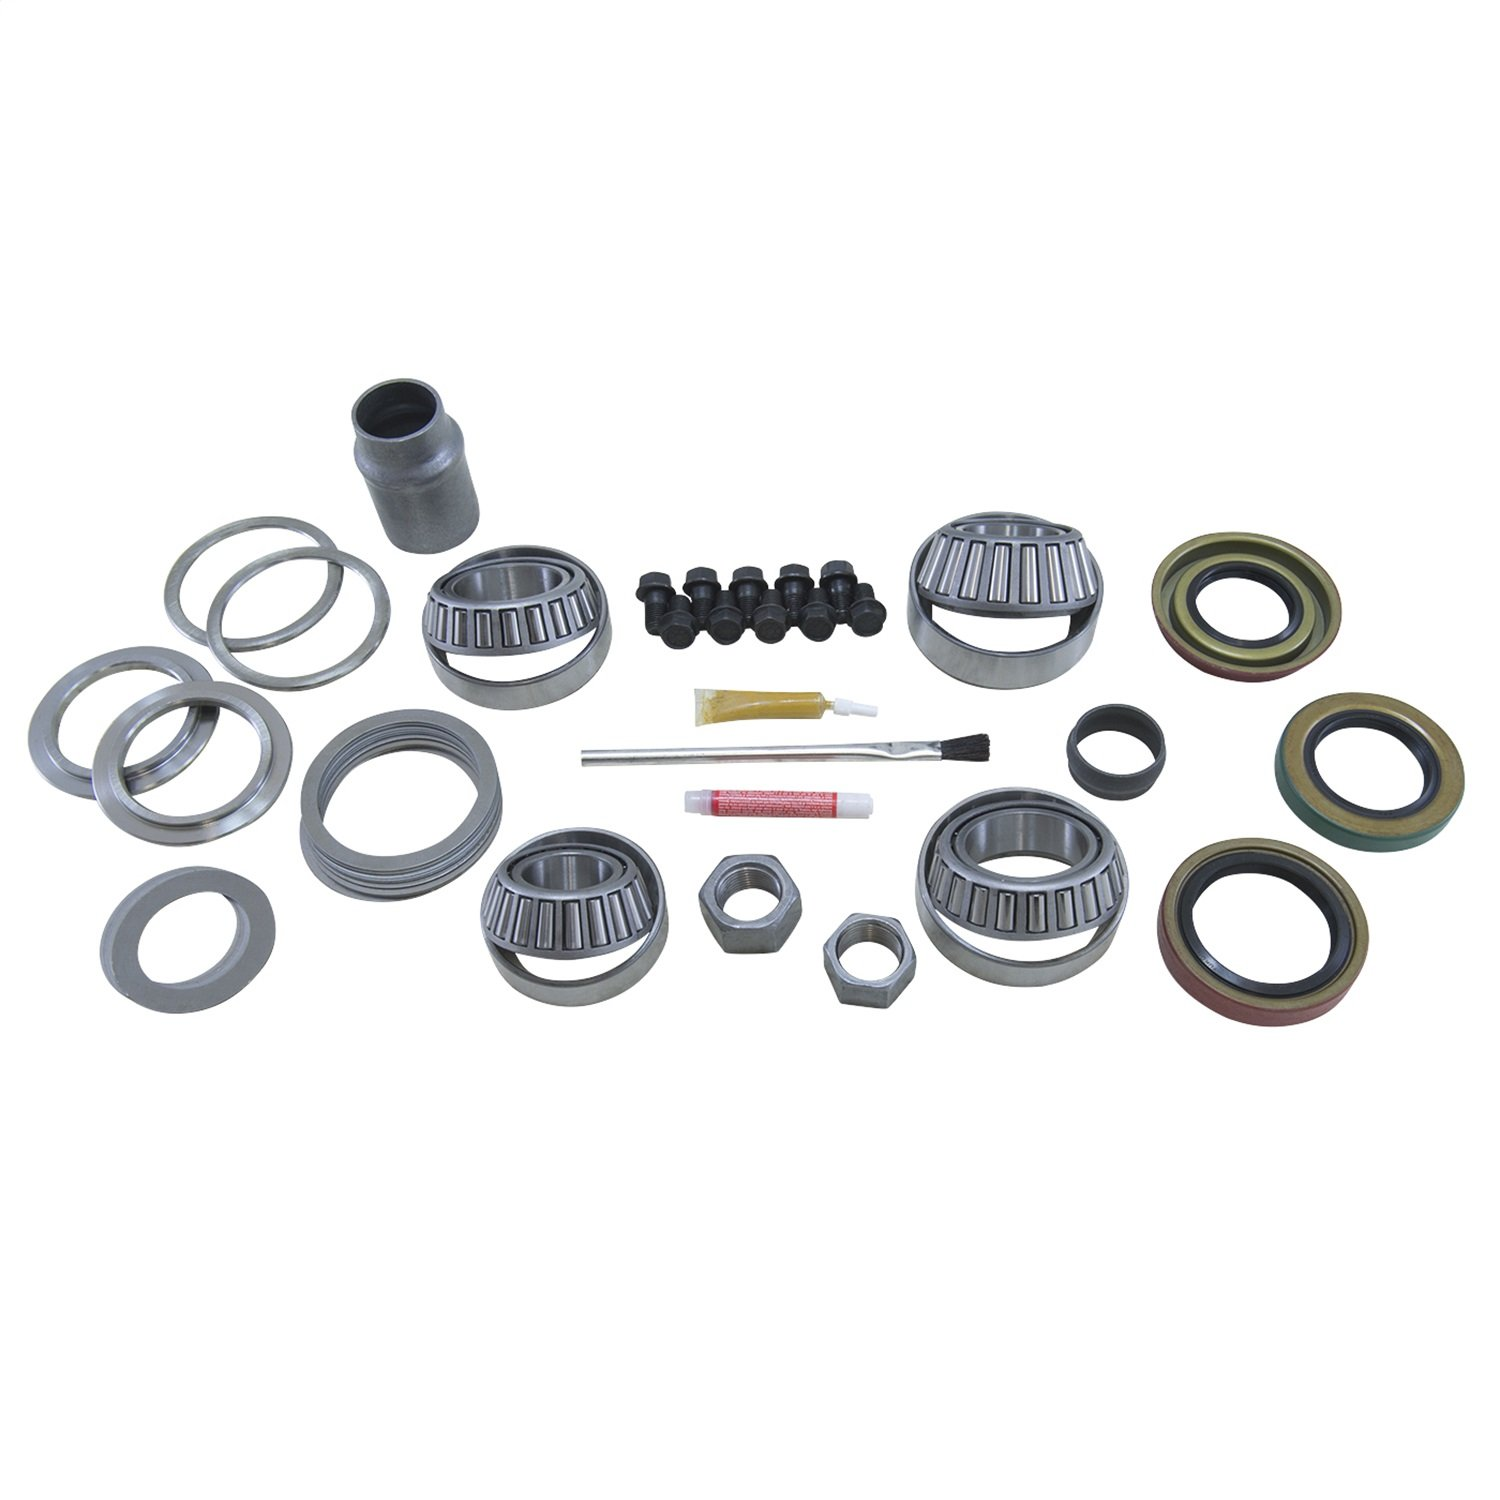 USA Standard Gear (ZK GM8.2BOP) Master Overhaul Kit for Buick/Oldsmobile/Pontiac 8.2 Differential